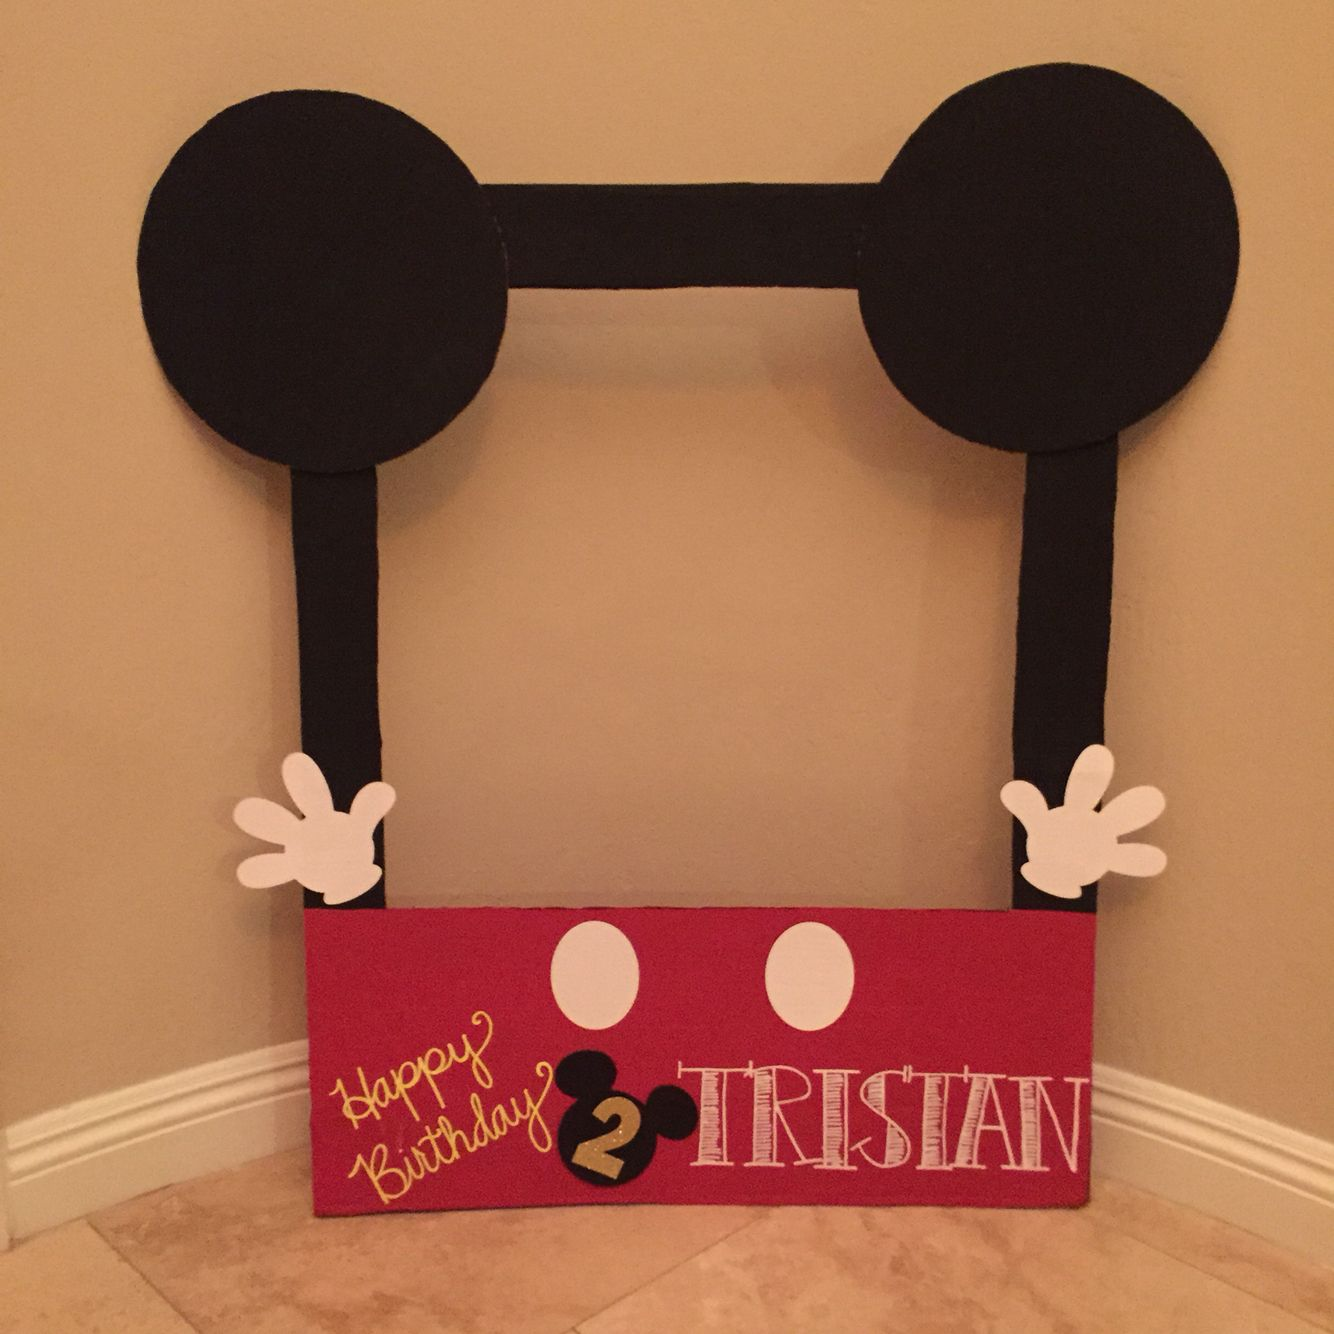 Diy Cardboard Photo Frame For Mickey Mouse Clubhouse Party Things